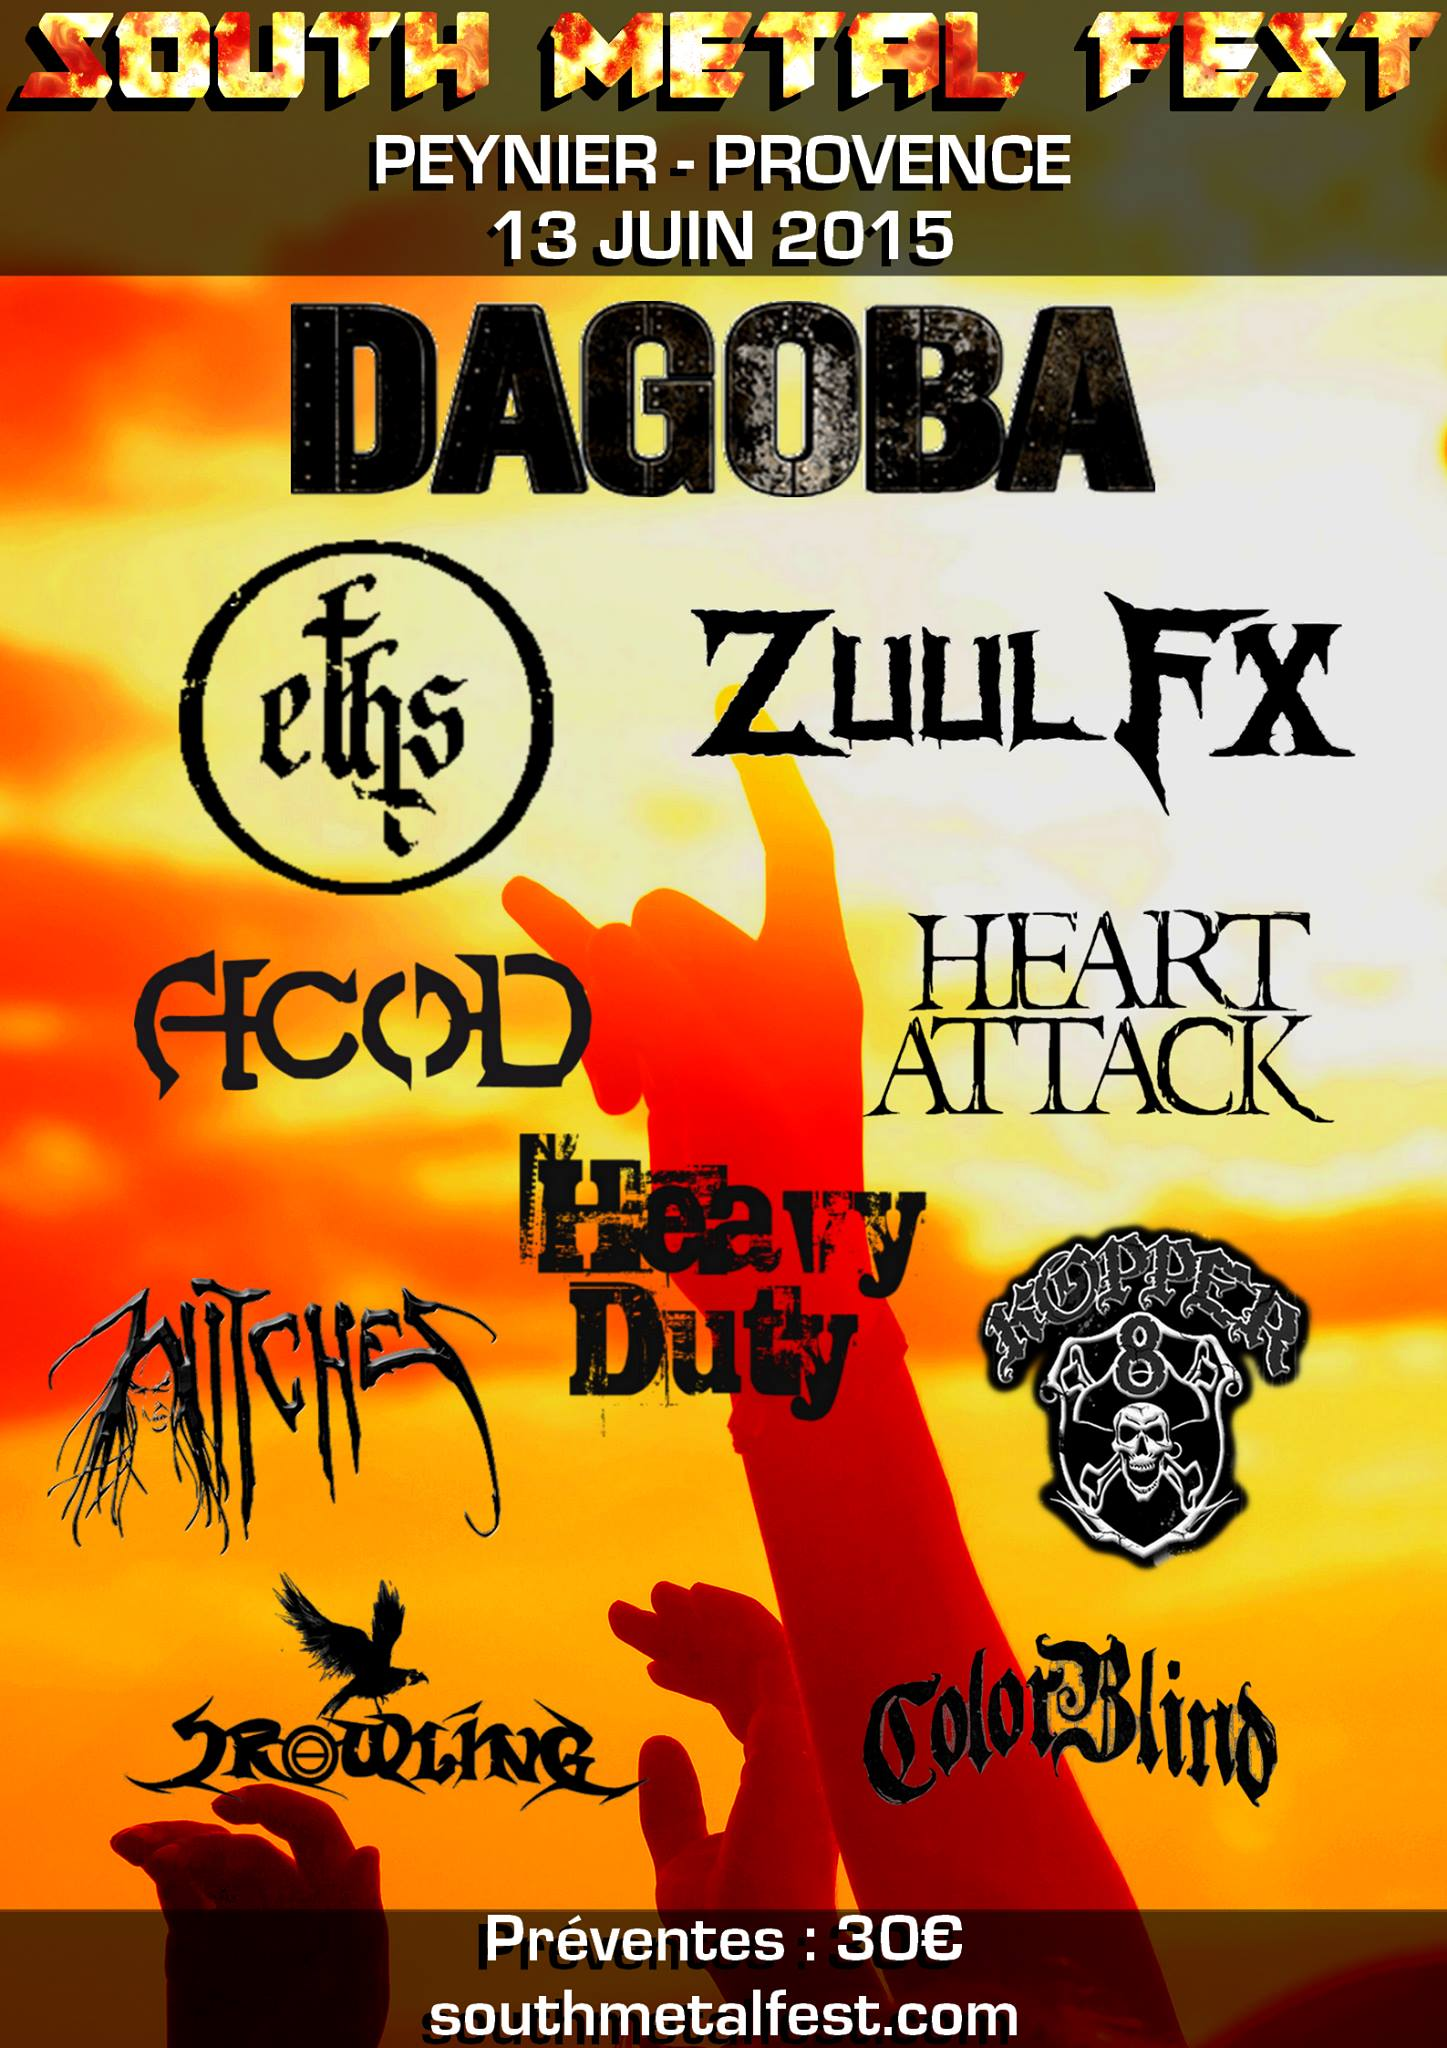 Witches flyer Dagoba + Eths + Zuul FX + A.c.o.D.+ Heavy Duty + Heart Attack + Kopper 8 + WITCHES + Crowling + Colorblind @  South Metal Fest Peynier (13, France)